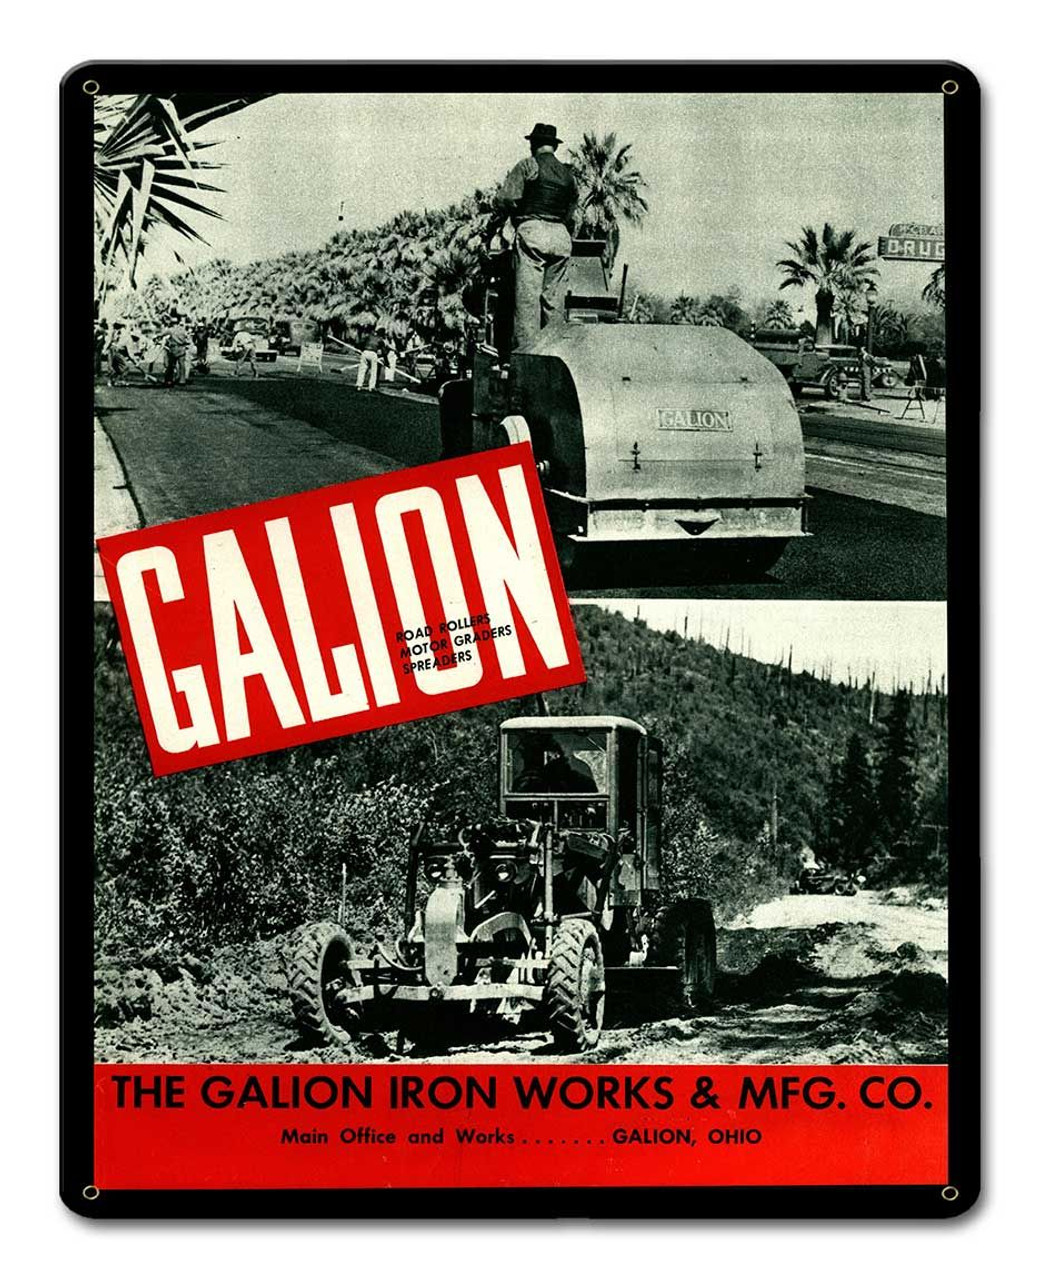 Galion Iron Works Metal Sign 12 x 15 Inches